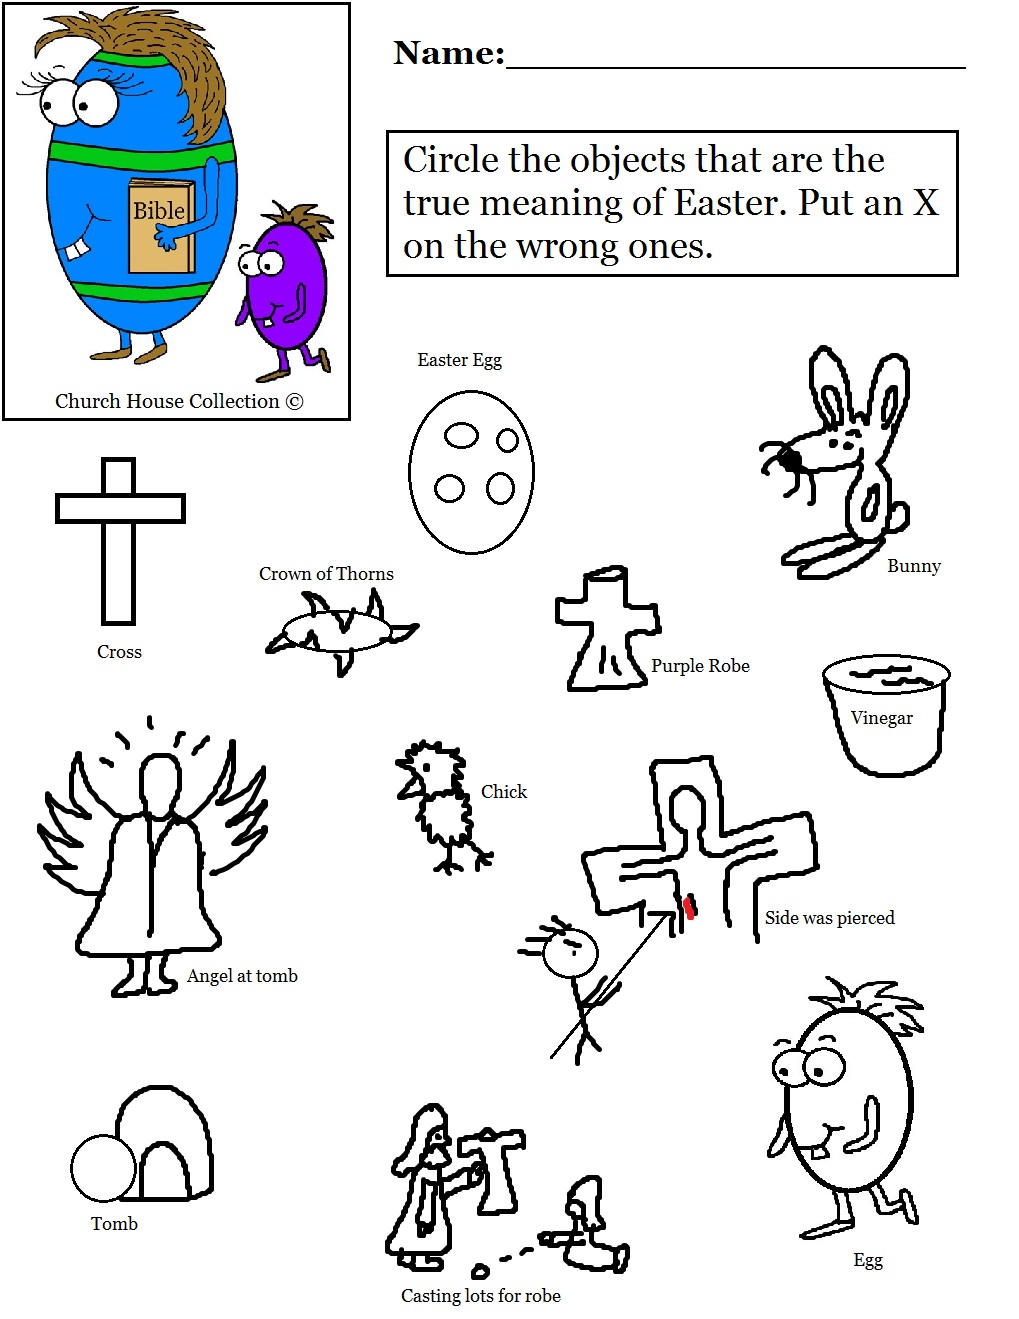 Worksheets Bible Worksheets For Preschoolers church house collection blog february 2013 circle the objects that are true meaning of easter put an x on wrong ones this is a really simple worksheet for smaller children to do